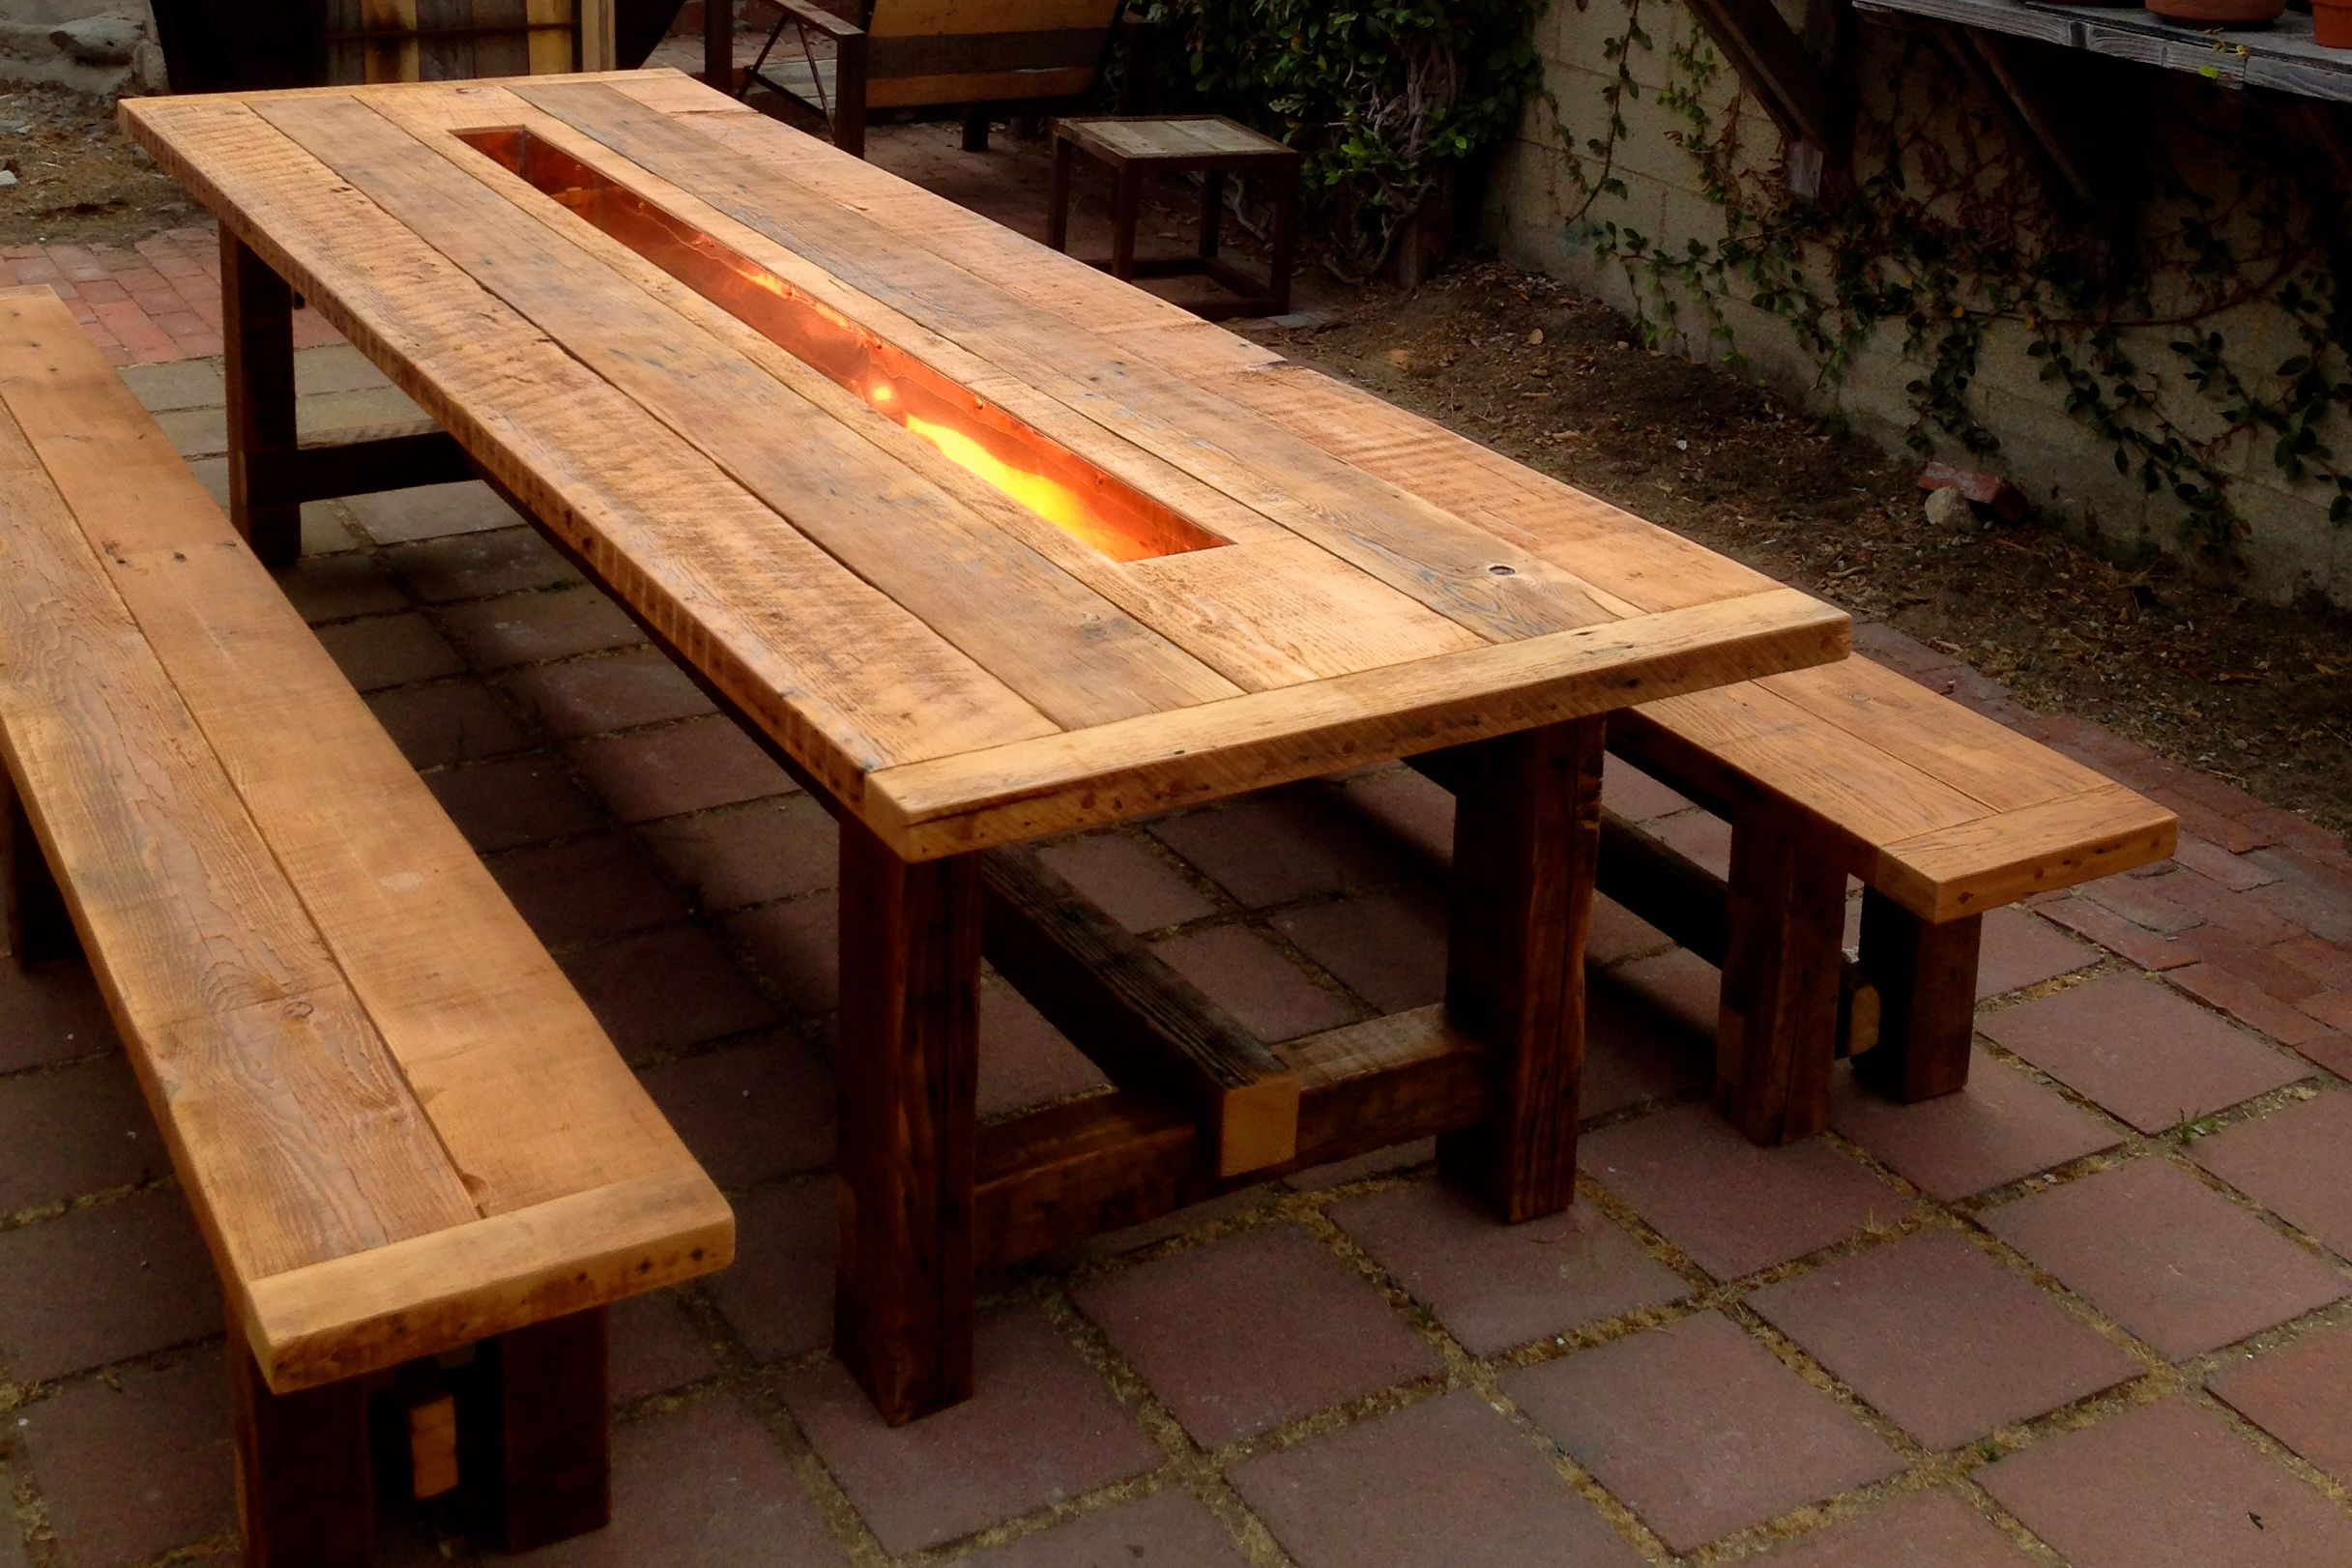 Homemade Dining Room Table Exterior Inspiration Building My Own Outdoor Wood Farm Table  Craft Ideas  Pinterest . Inspiration Design